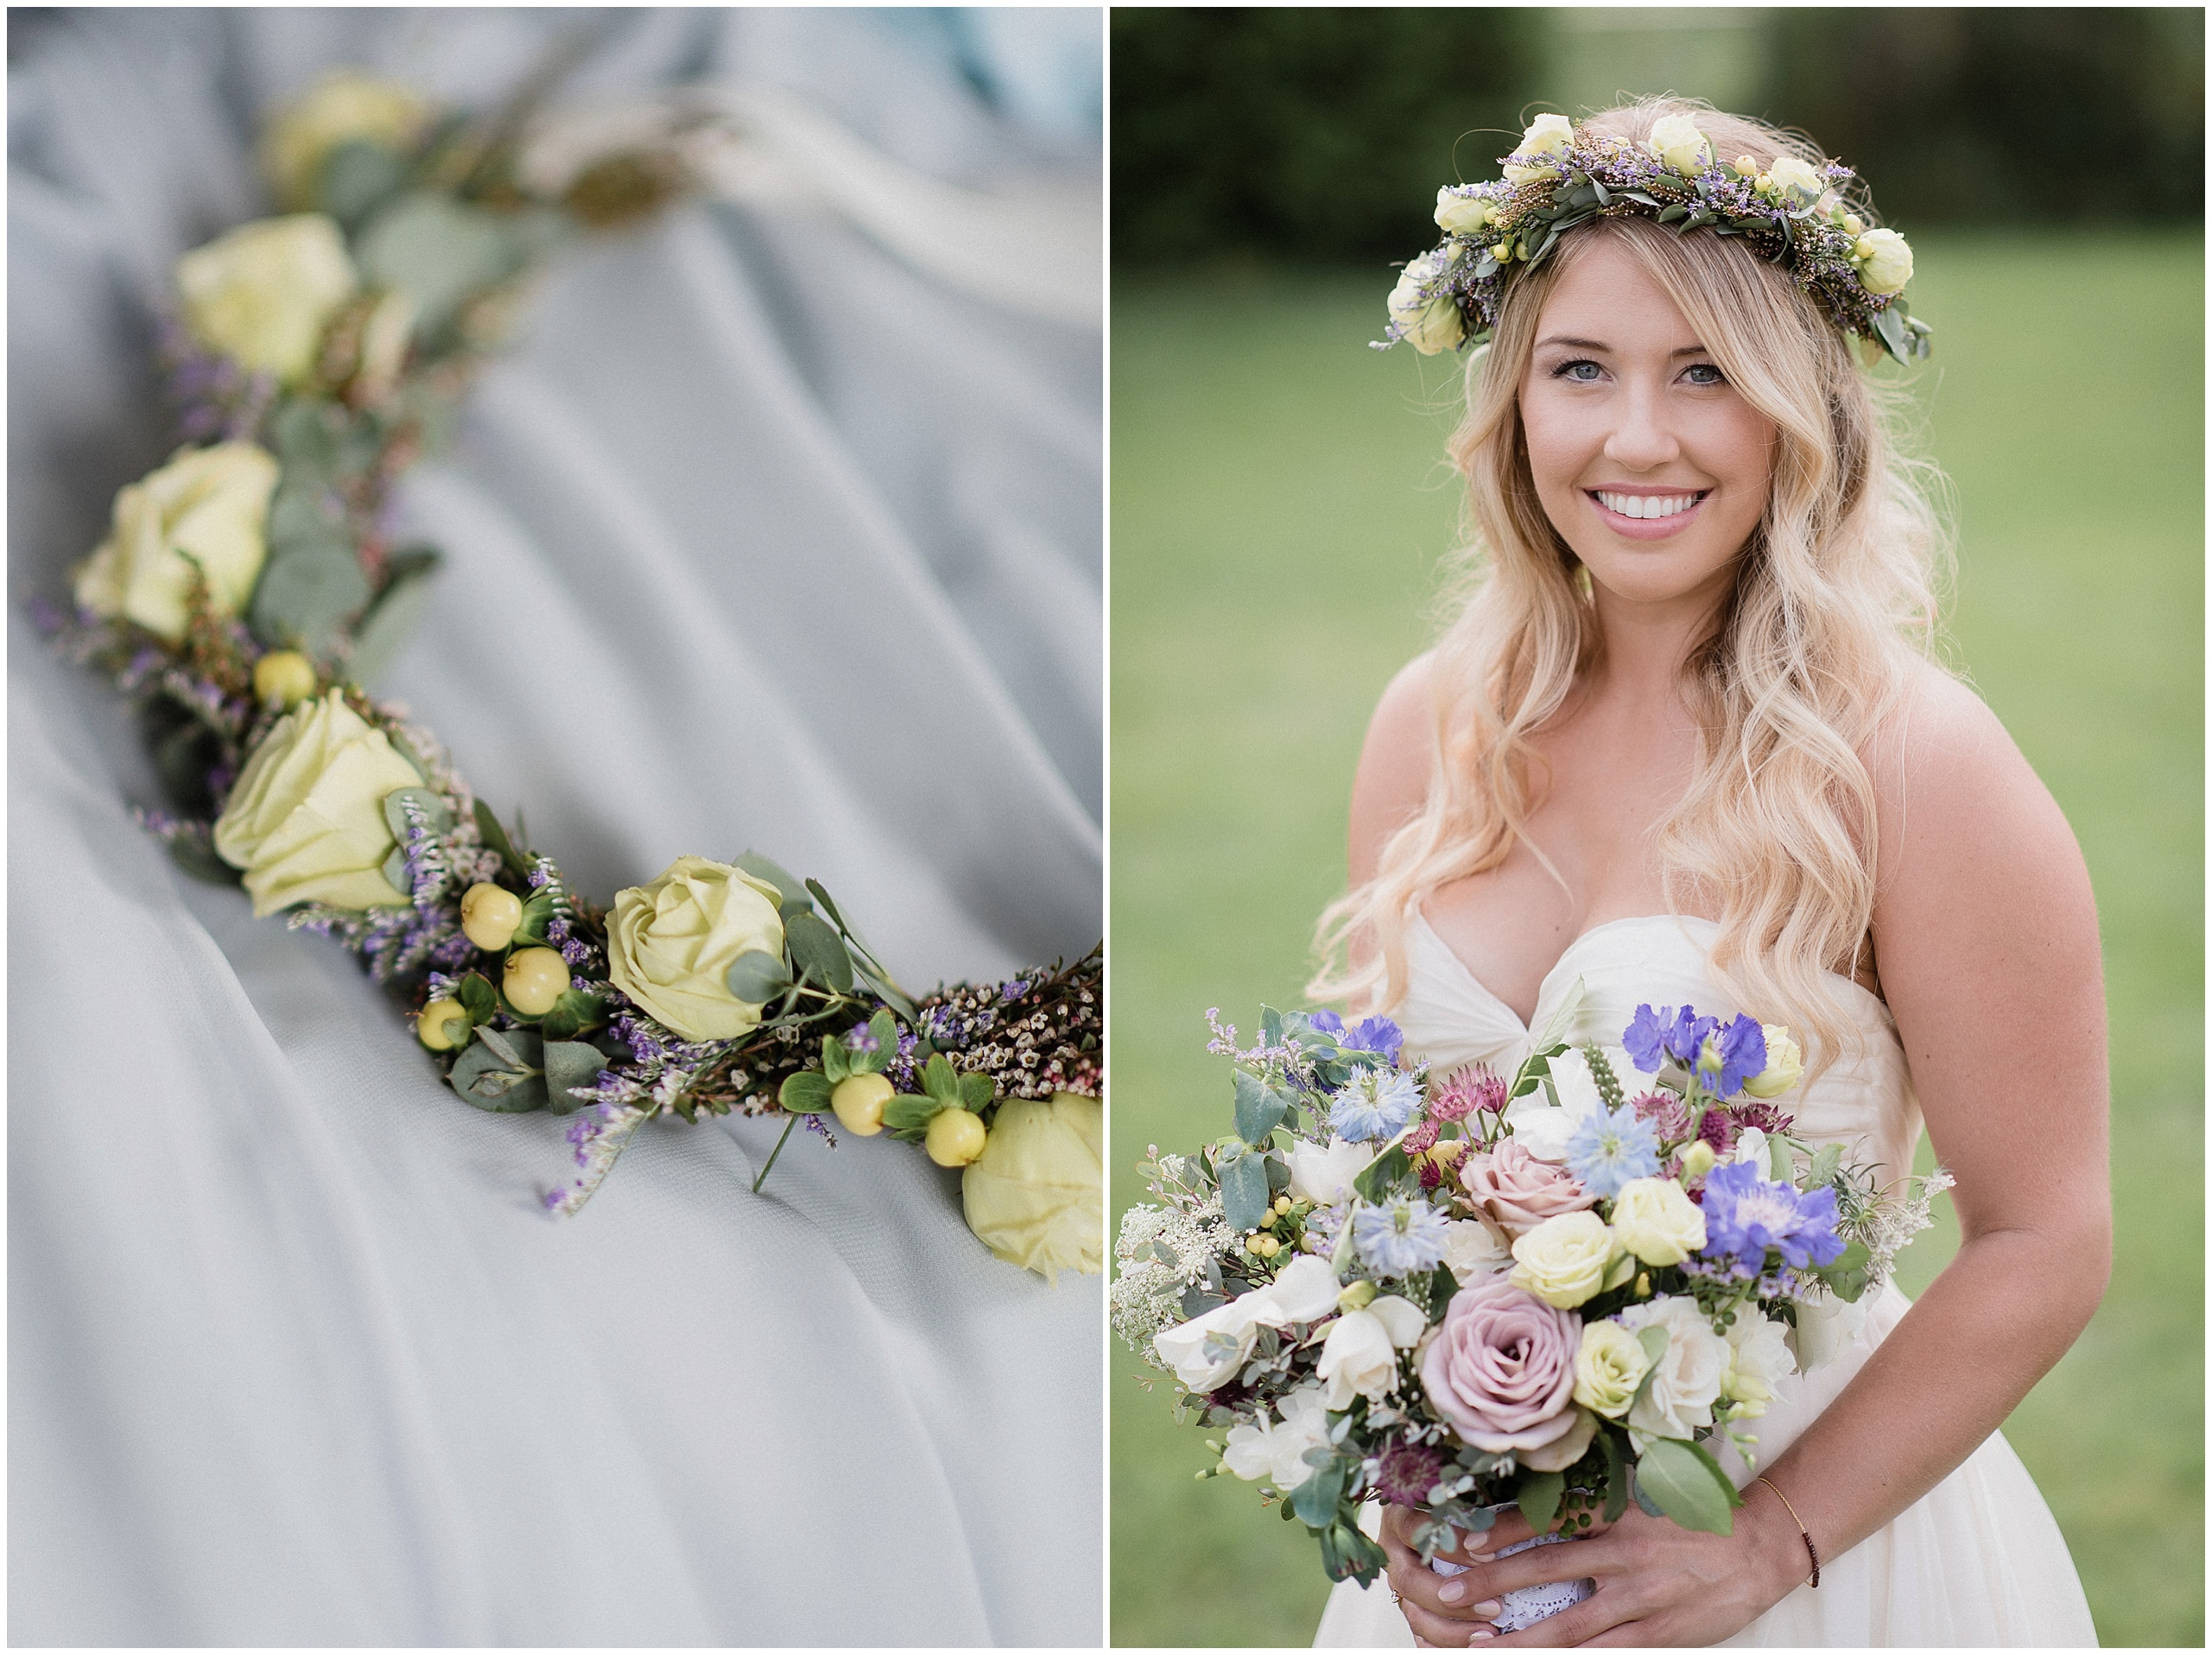 Pastel, garden inspired bouquet and flower crown by Coriander Girl, photographed by Jenn Kavanagh Photography